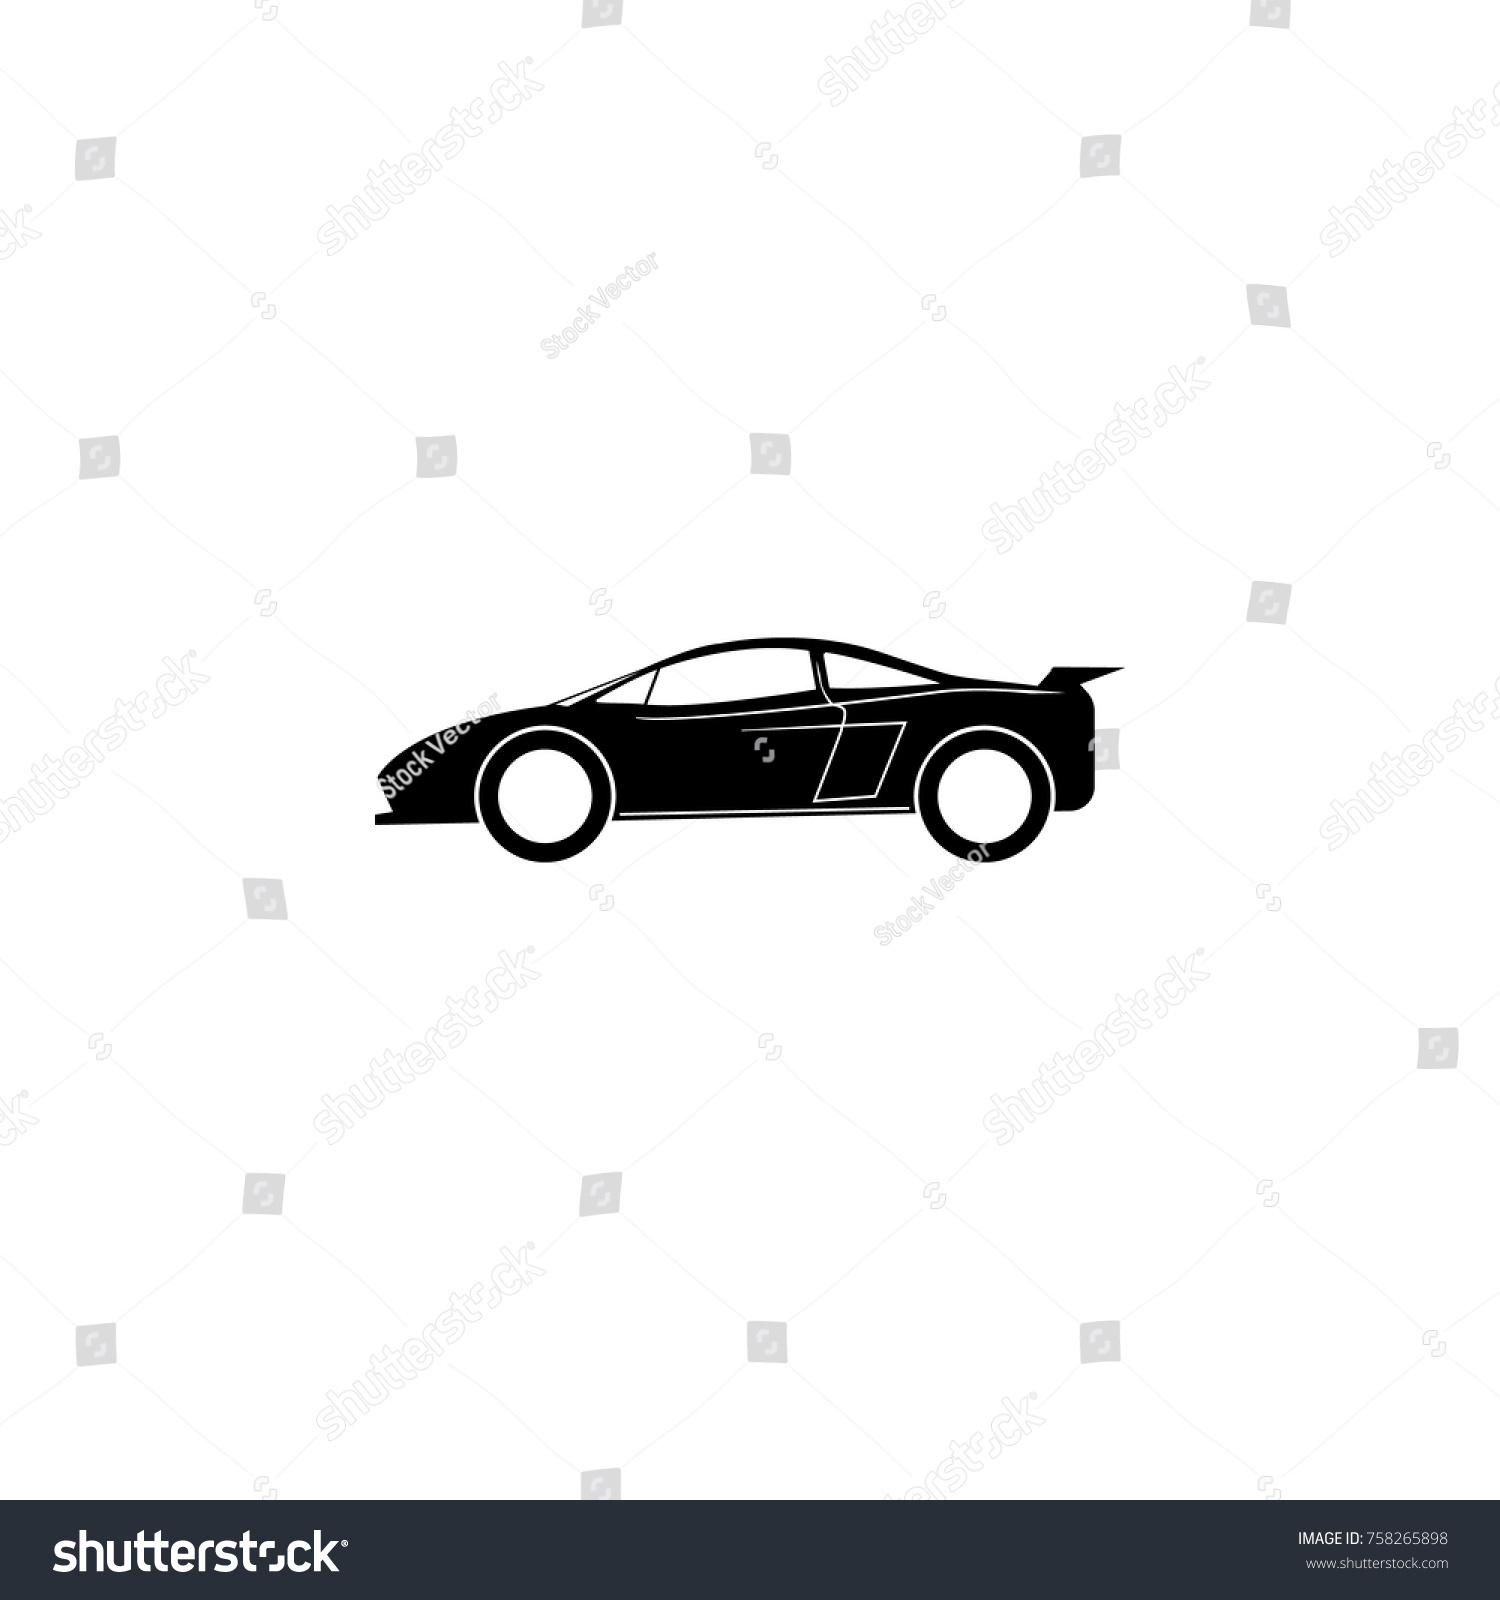 Sports Car Icon Car Type Simple Stock Vector 758265898 - Shutterstock